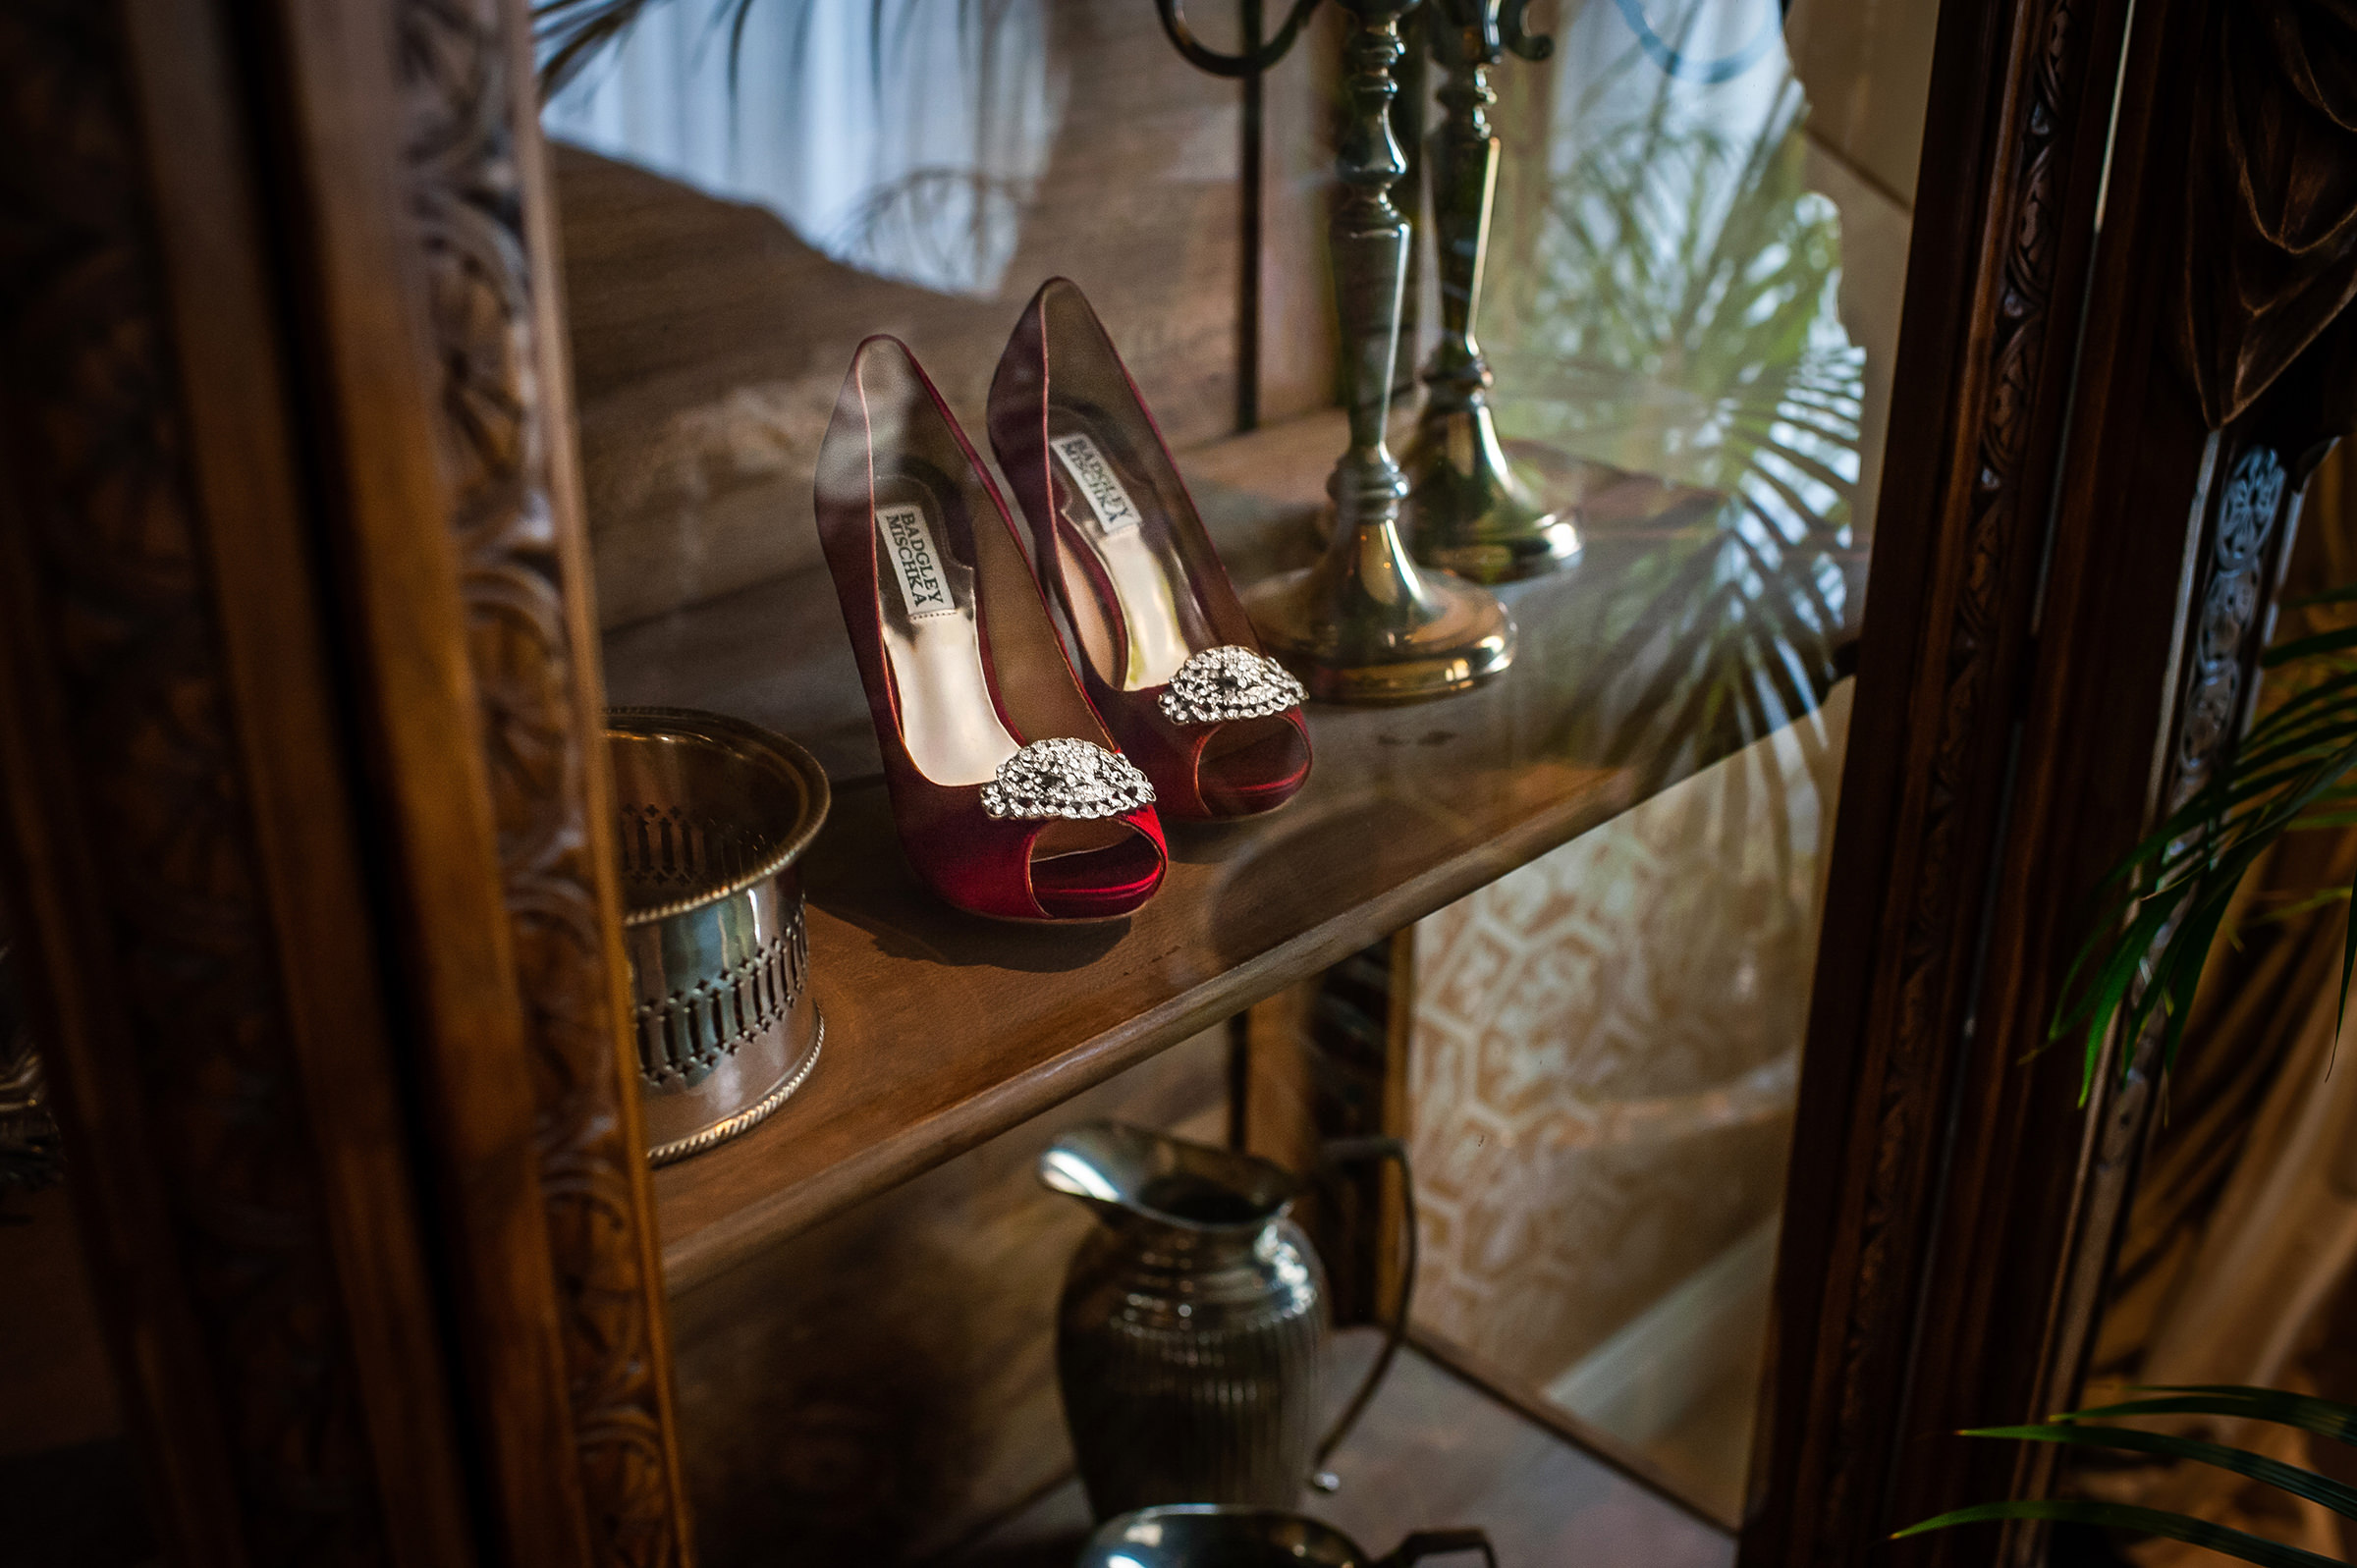 still-life-with-red-badgley-mischka-shoes-david-sherry-photography